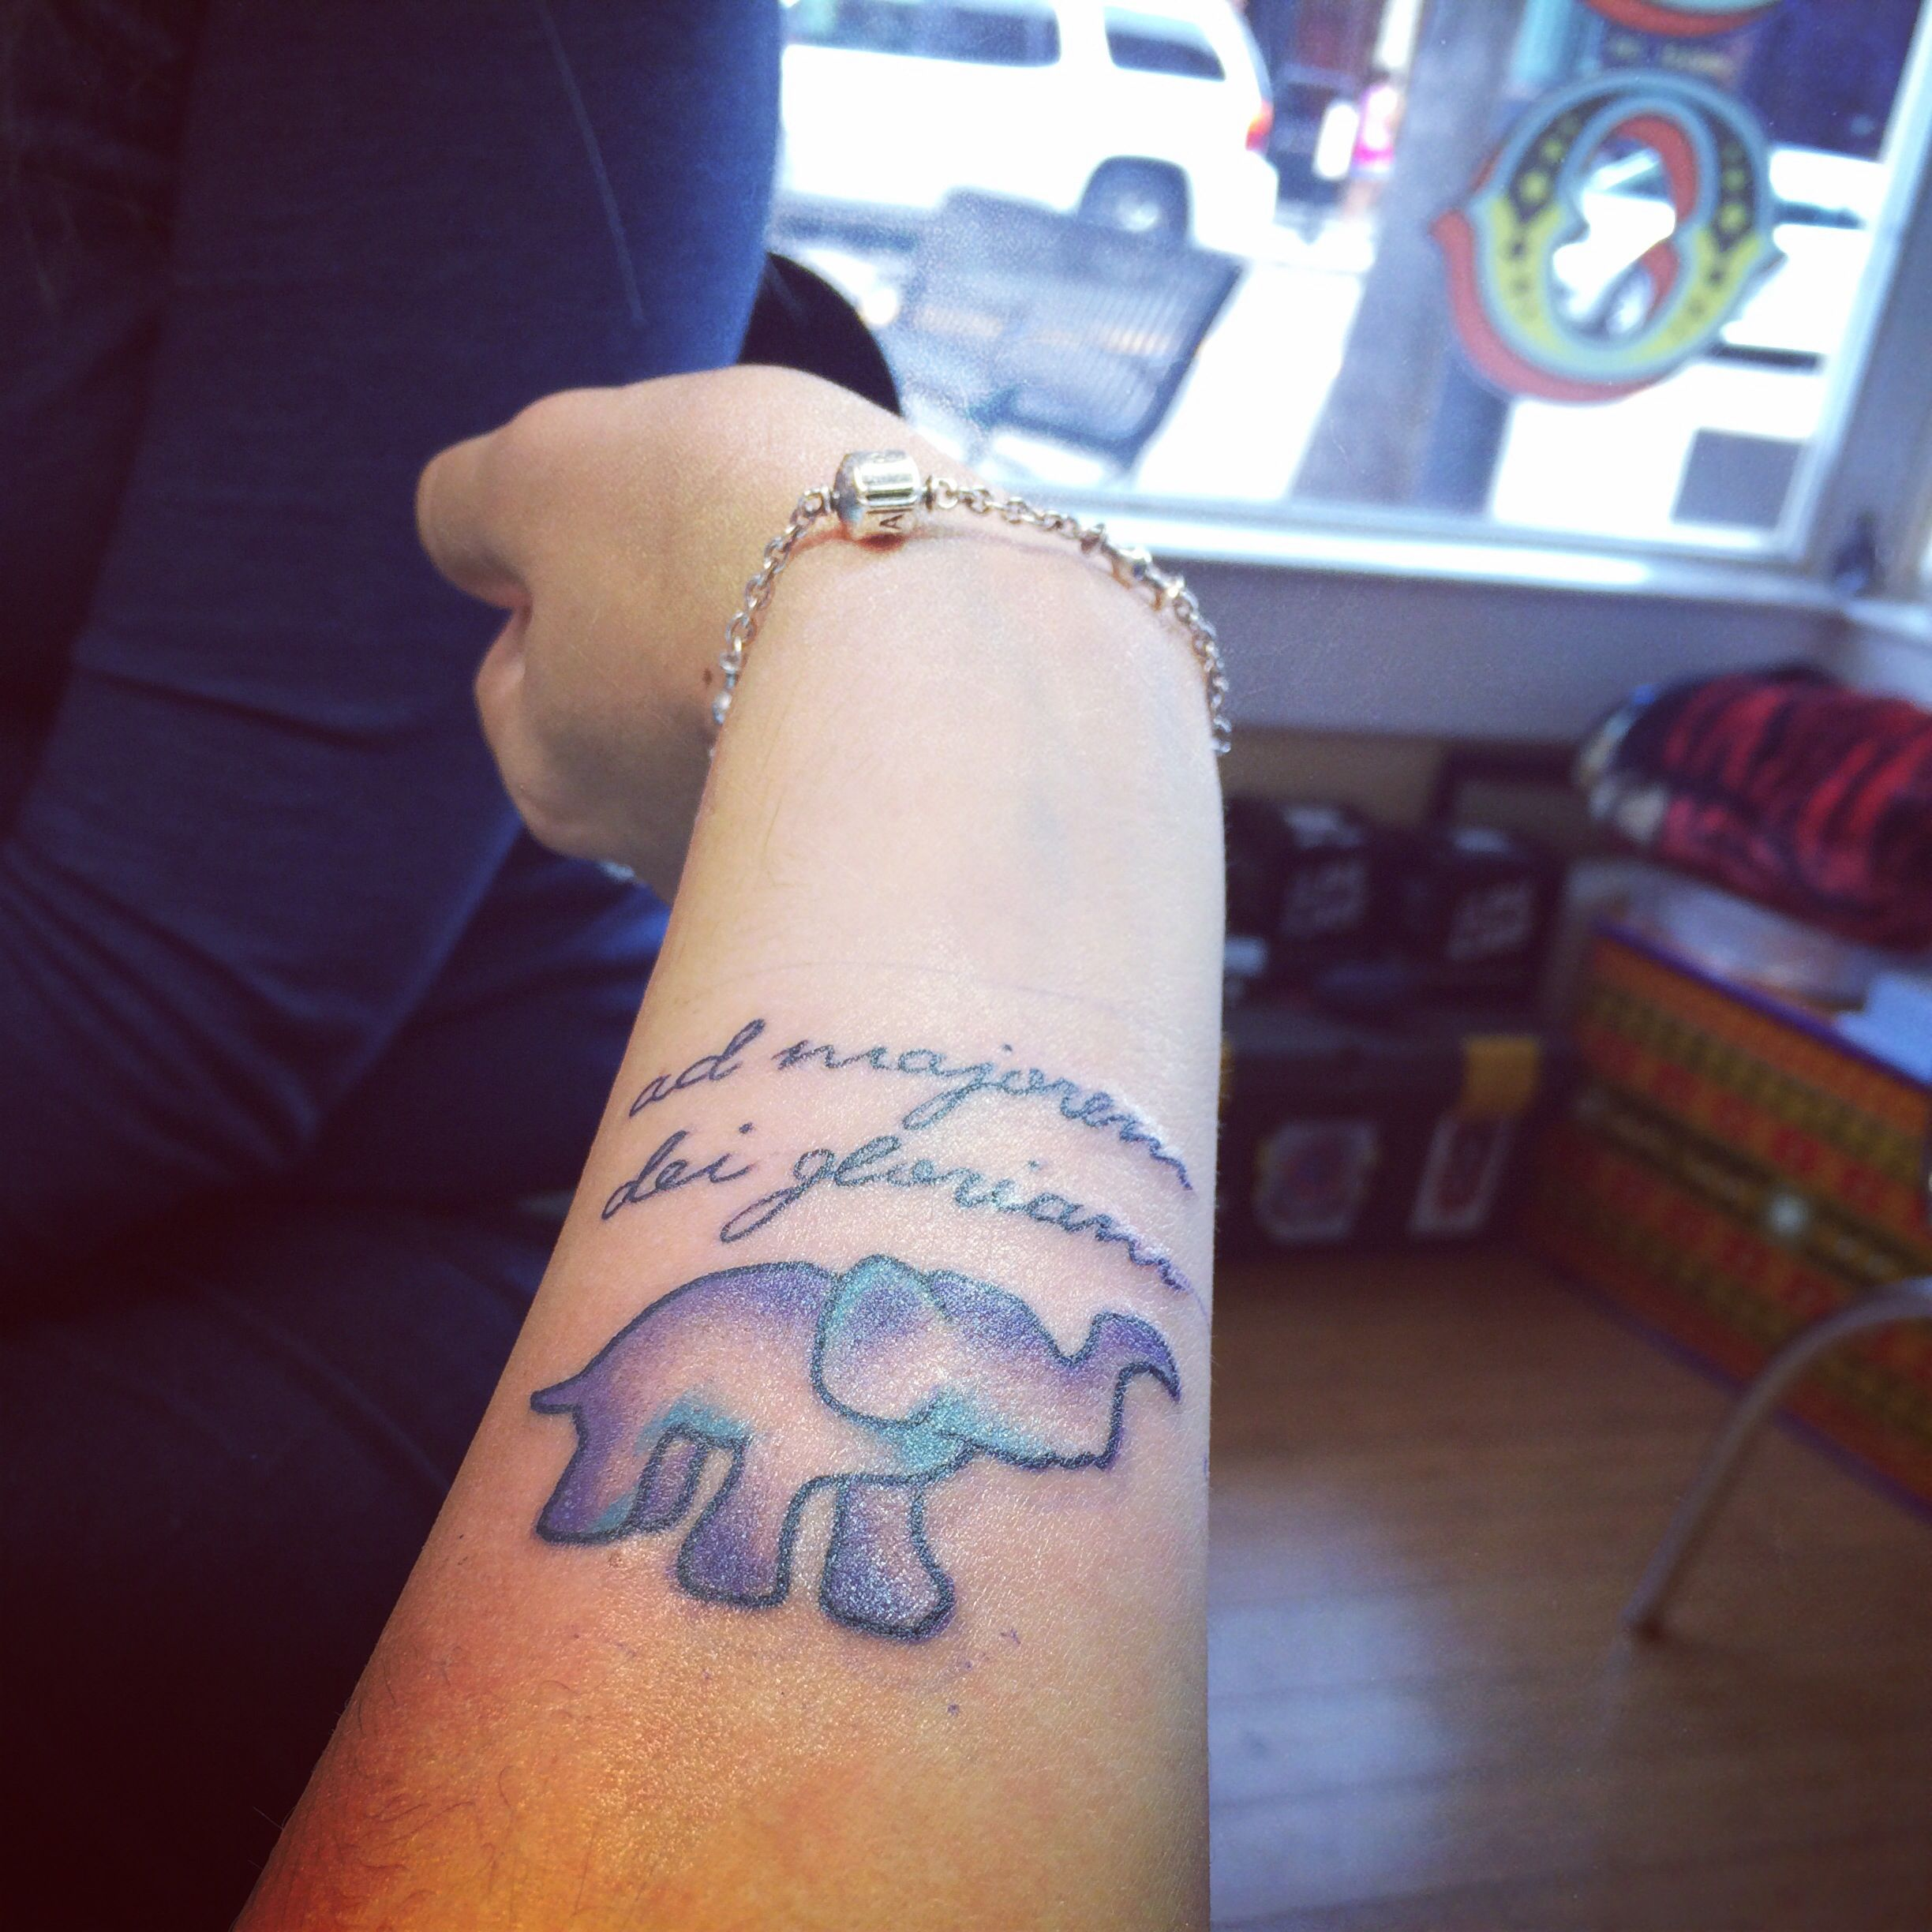 8a1bcc7357966 My new tattoo! For my uncle with Alzheimer's . Purple for awareness and an  elephant for memory and family